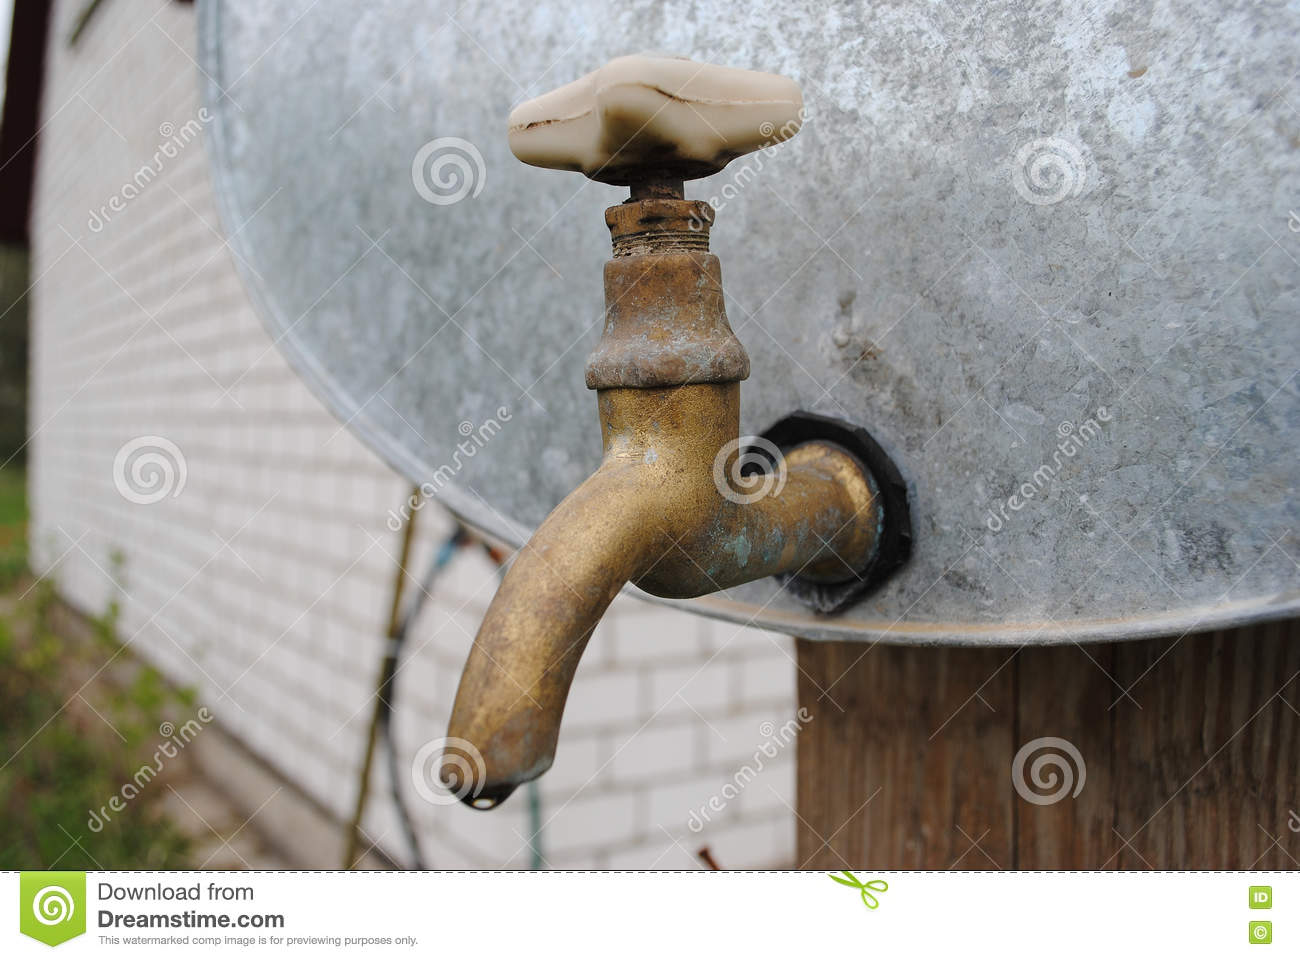 Vintage Old Brass Water Tap On A Galvanized Water Tank Stock Image